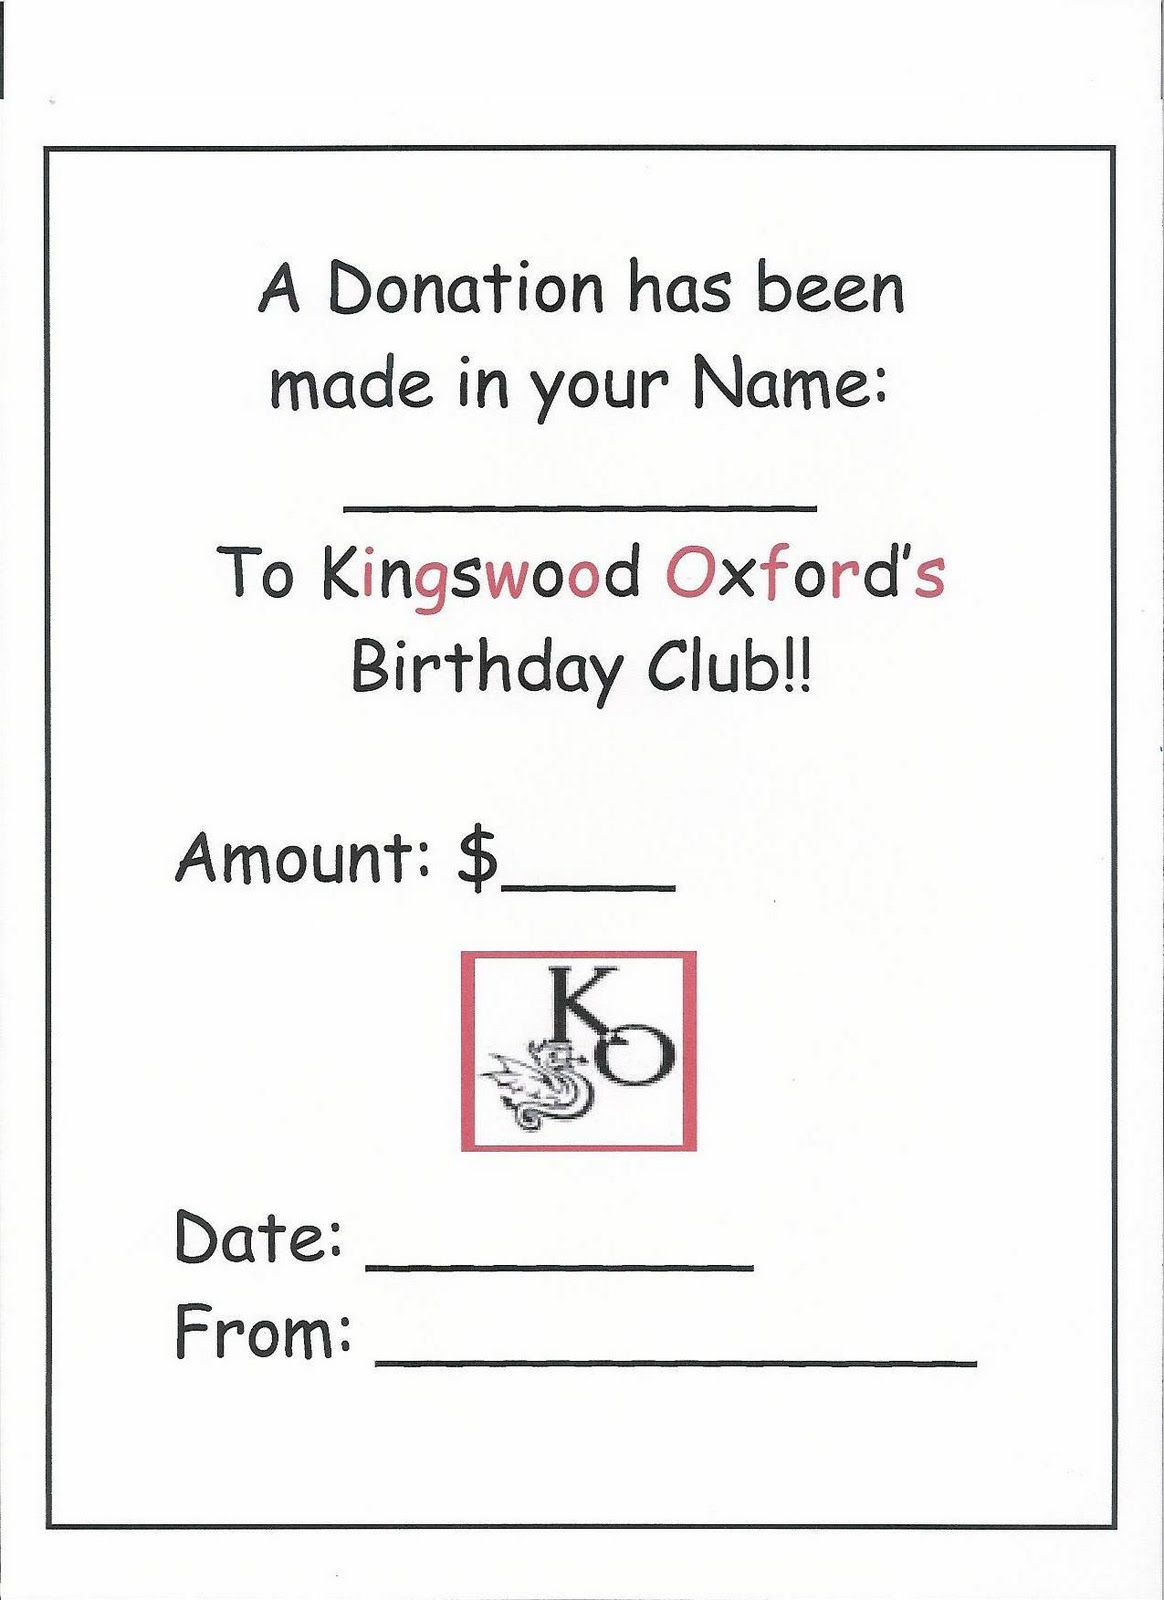 My Sister And I Thought We Could Help Raise Money For The Hartford School Kids By Donating To Birthday Club As Part Of A Friends Gift